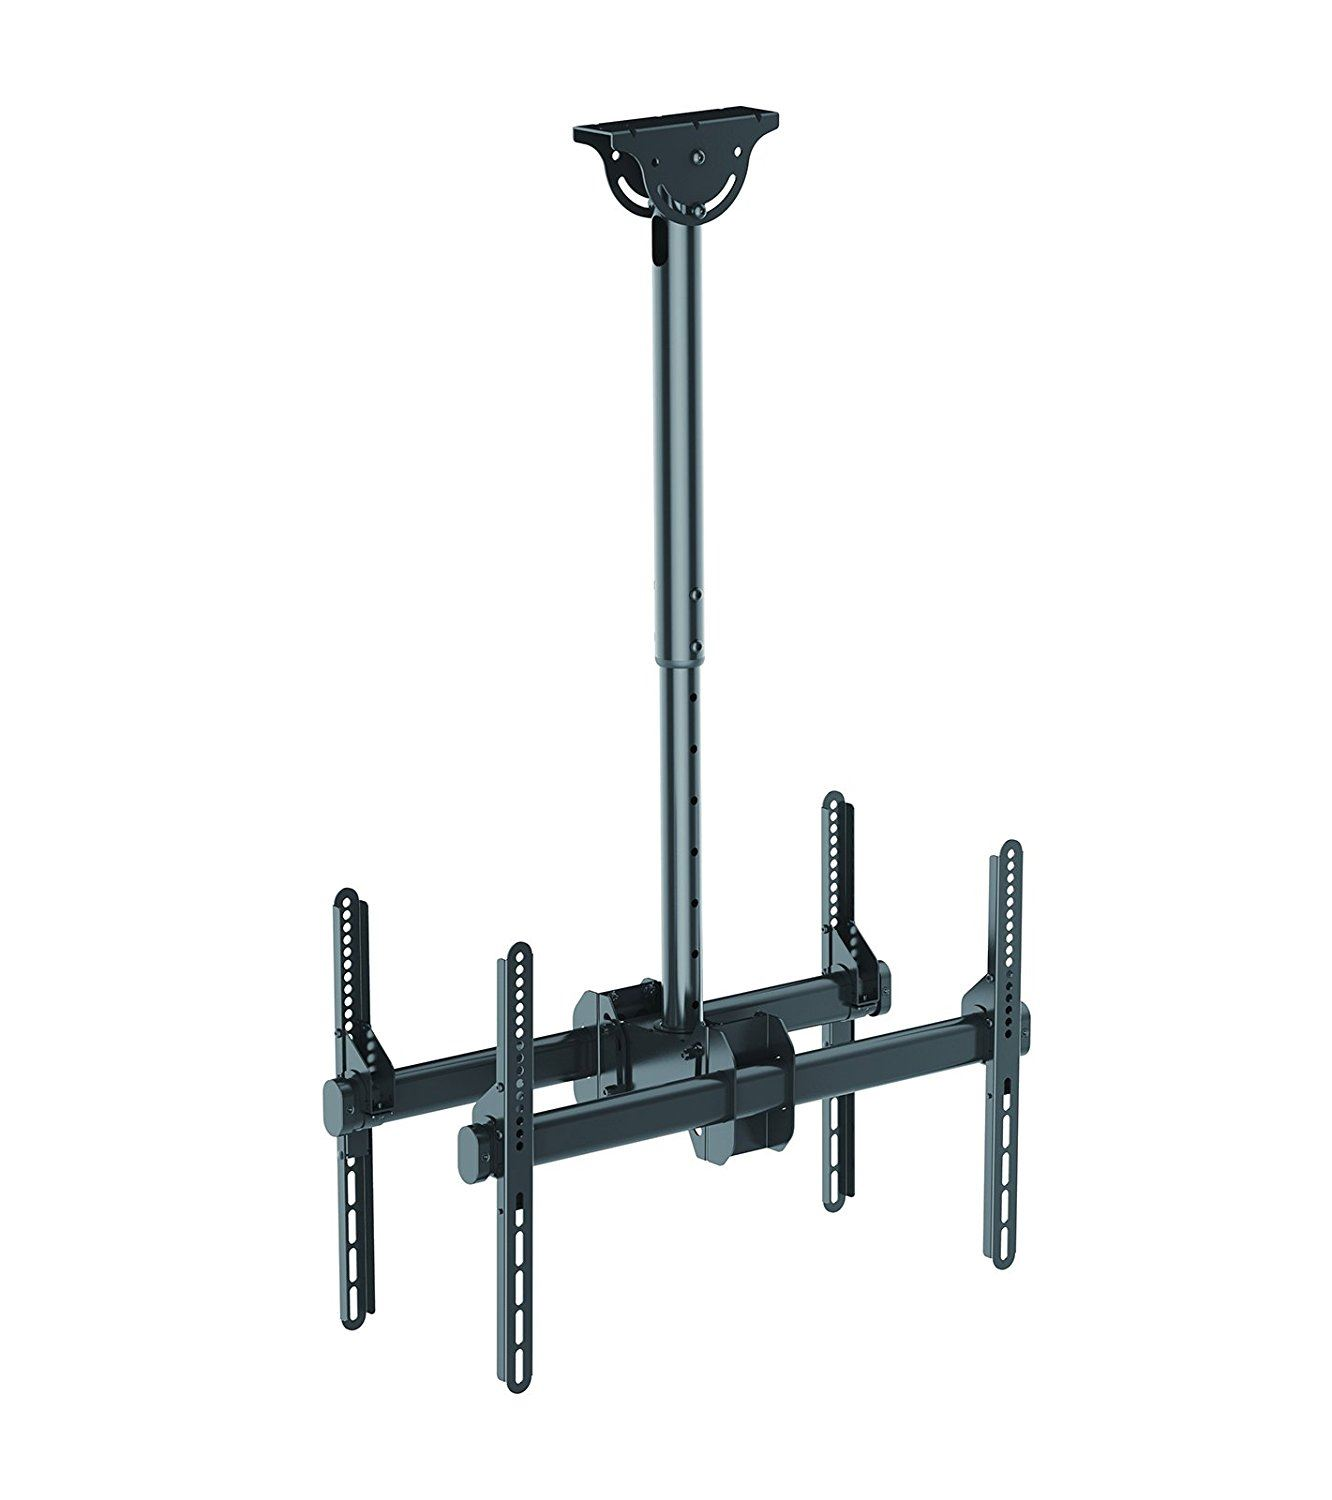 is down other motorized mount tv mounts flip heavy space that surfaces duty from ceiling to the bracket pin and vivo e ceilings saver perfect